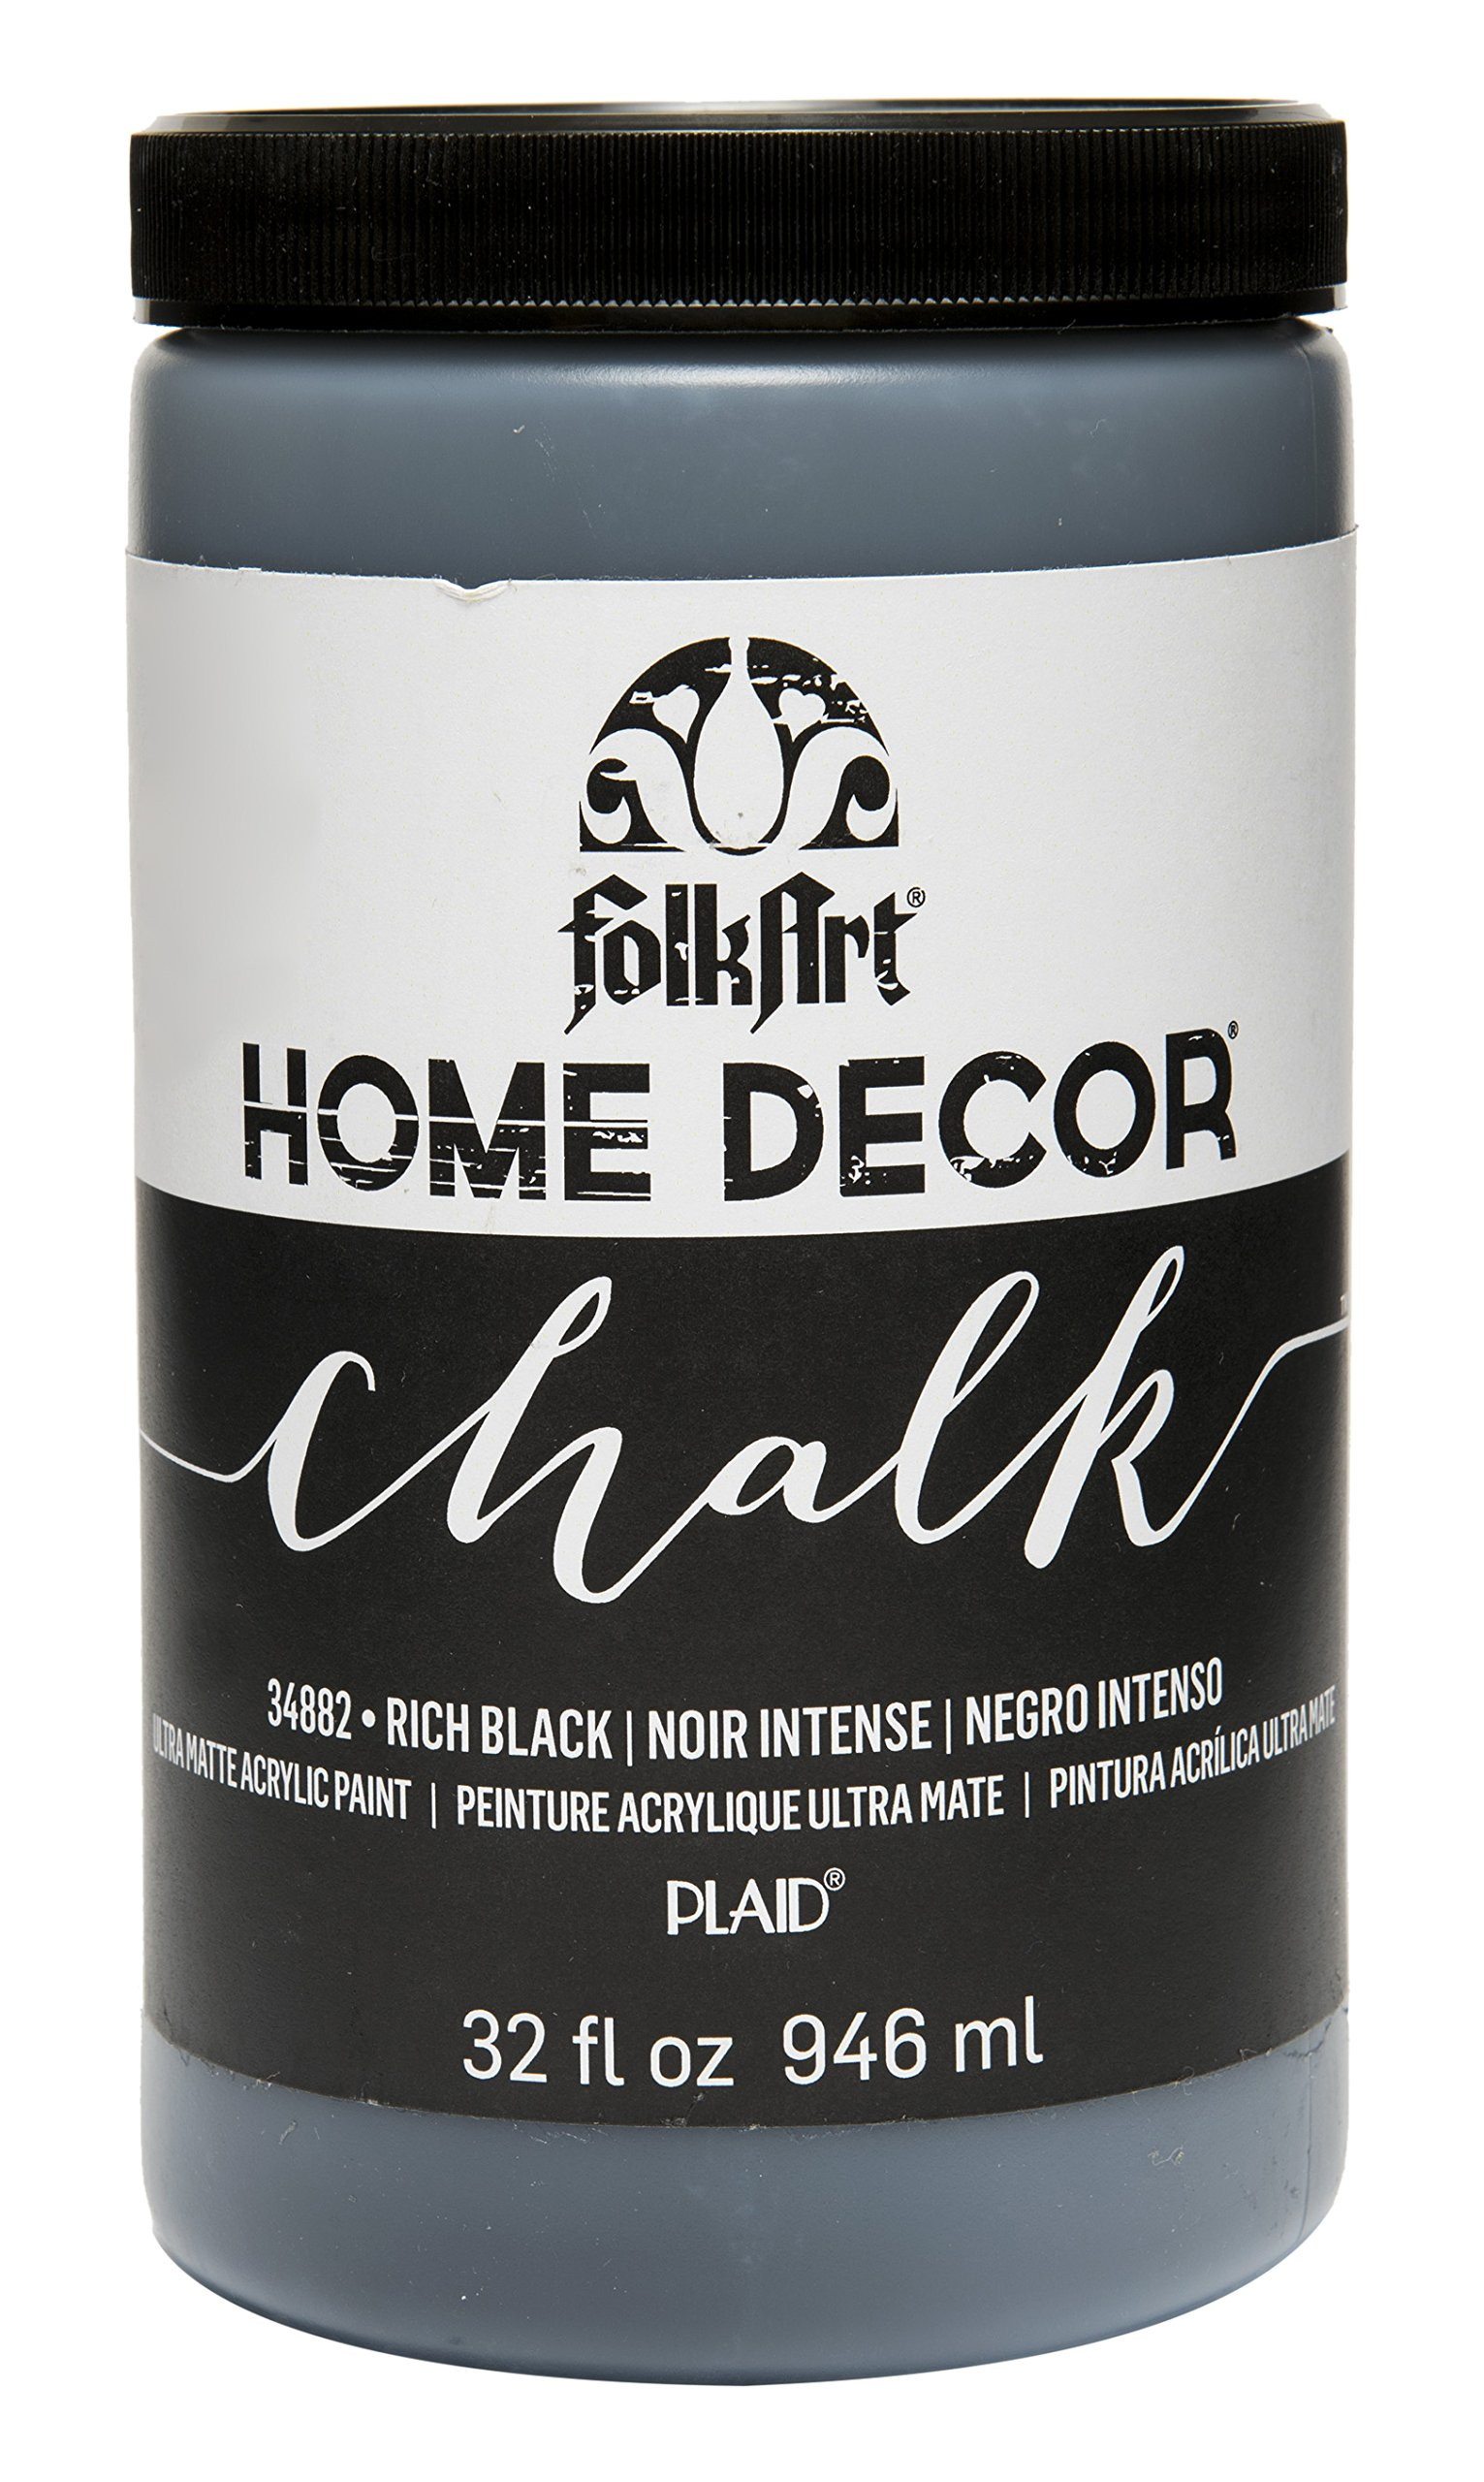 FolkArt Home Decor Chalk Furniture & Craft Paint in Assorted Colors (32 oz), 34882 Rich black